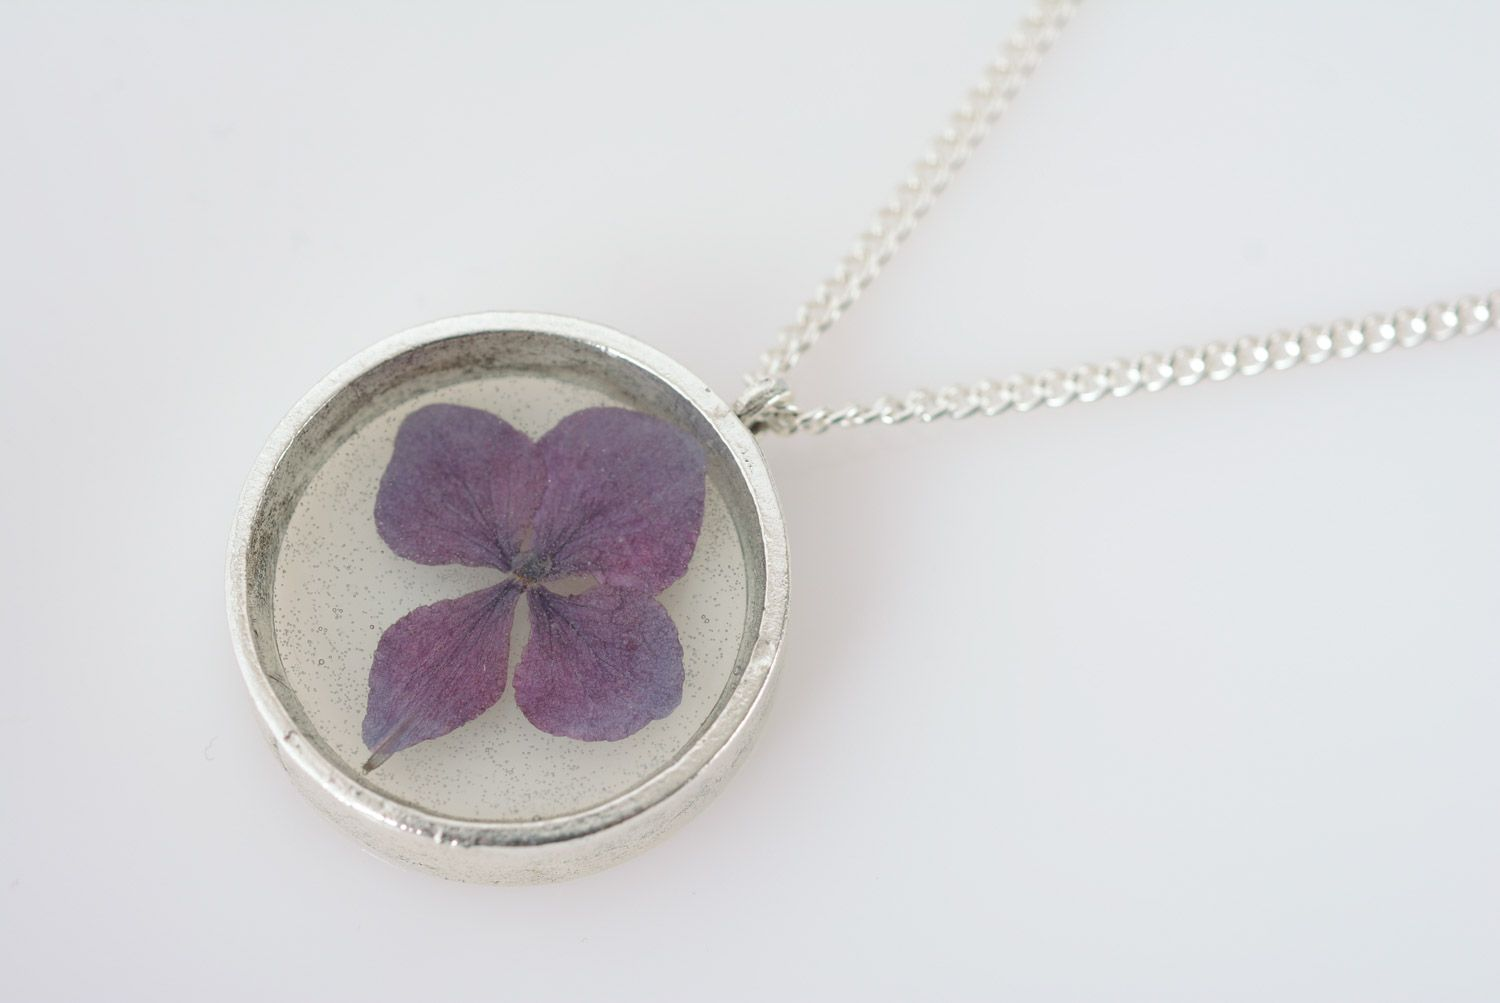 Handmade women's botanical pendant with real violet flower coated with epoxy photo 5